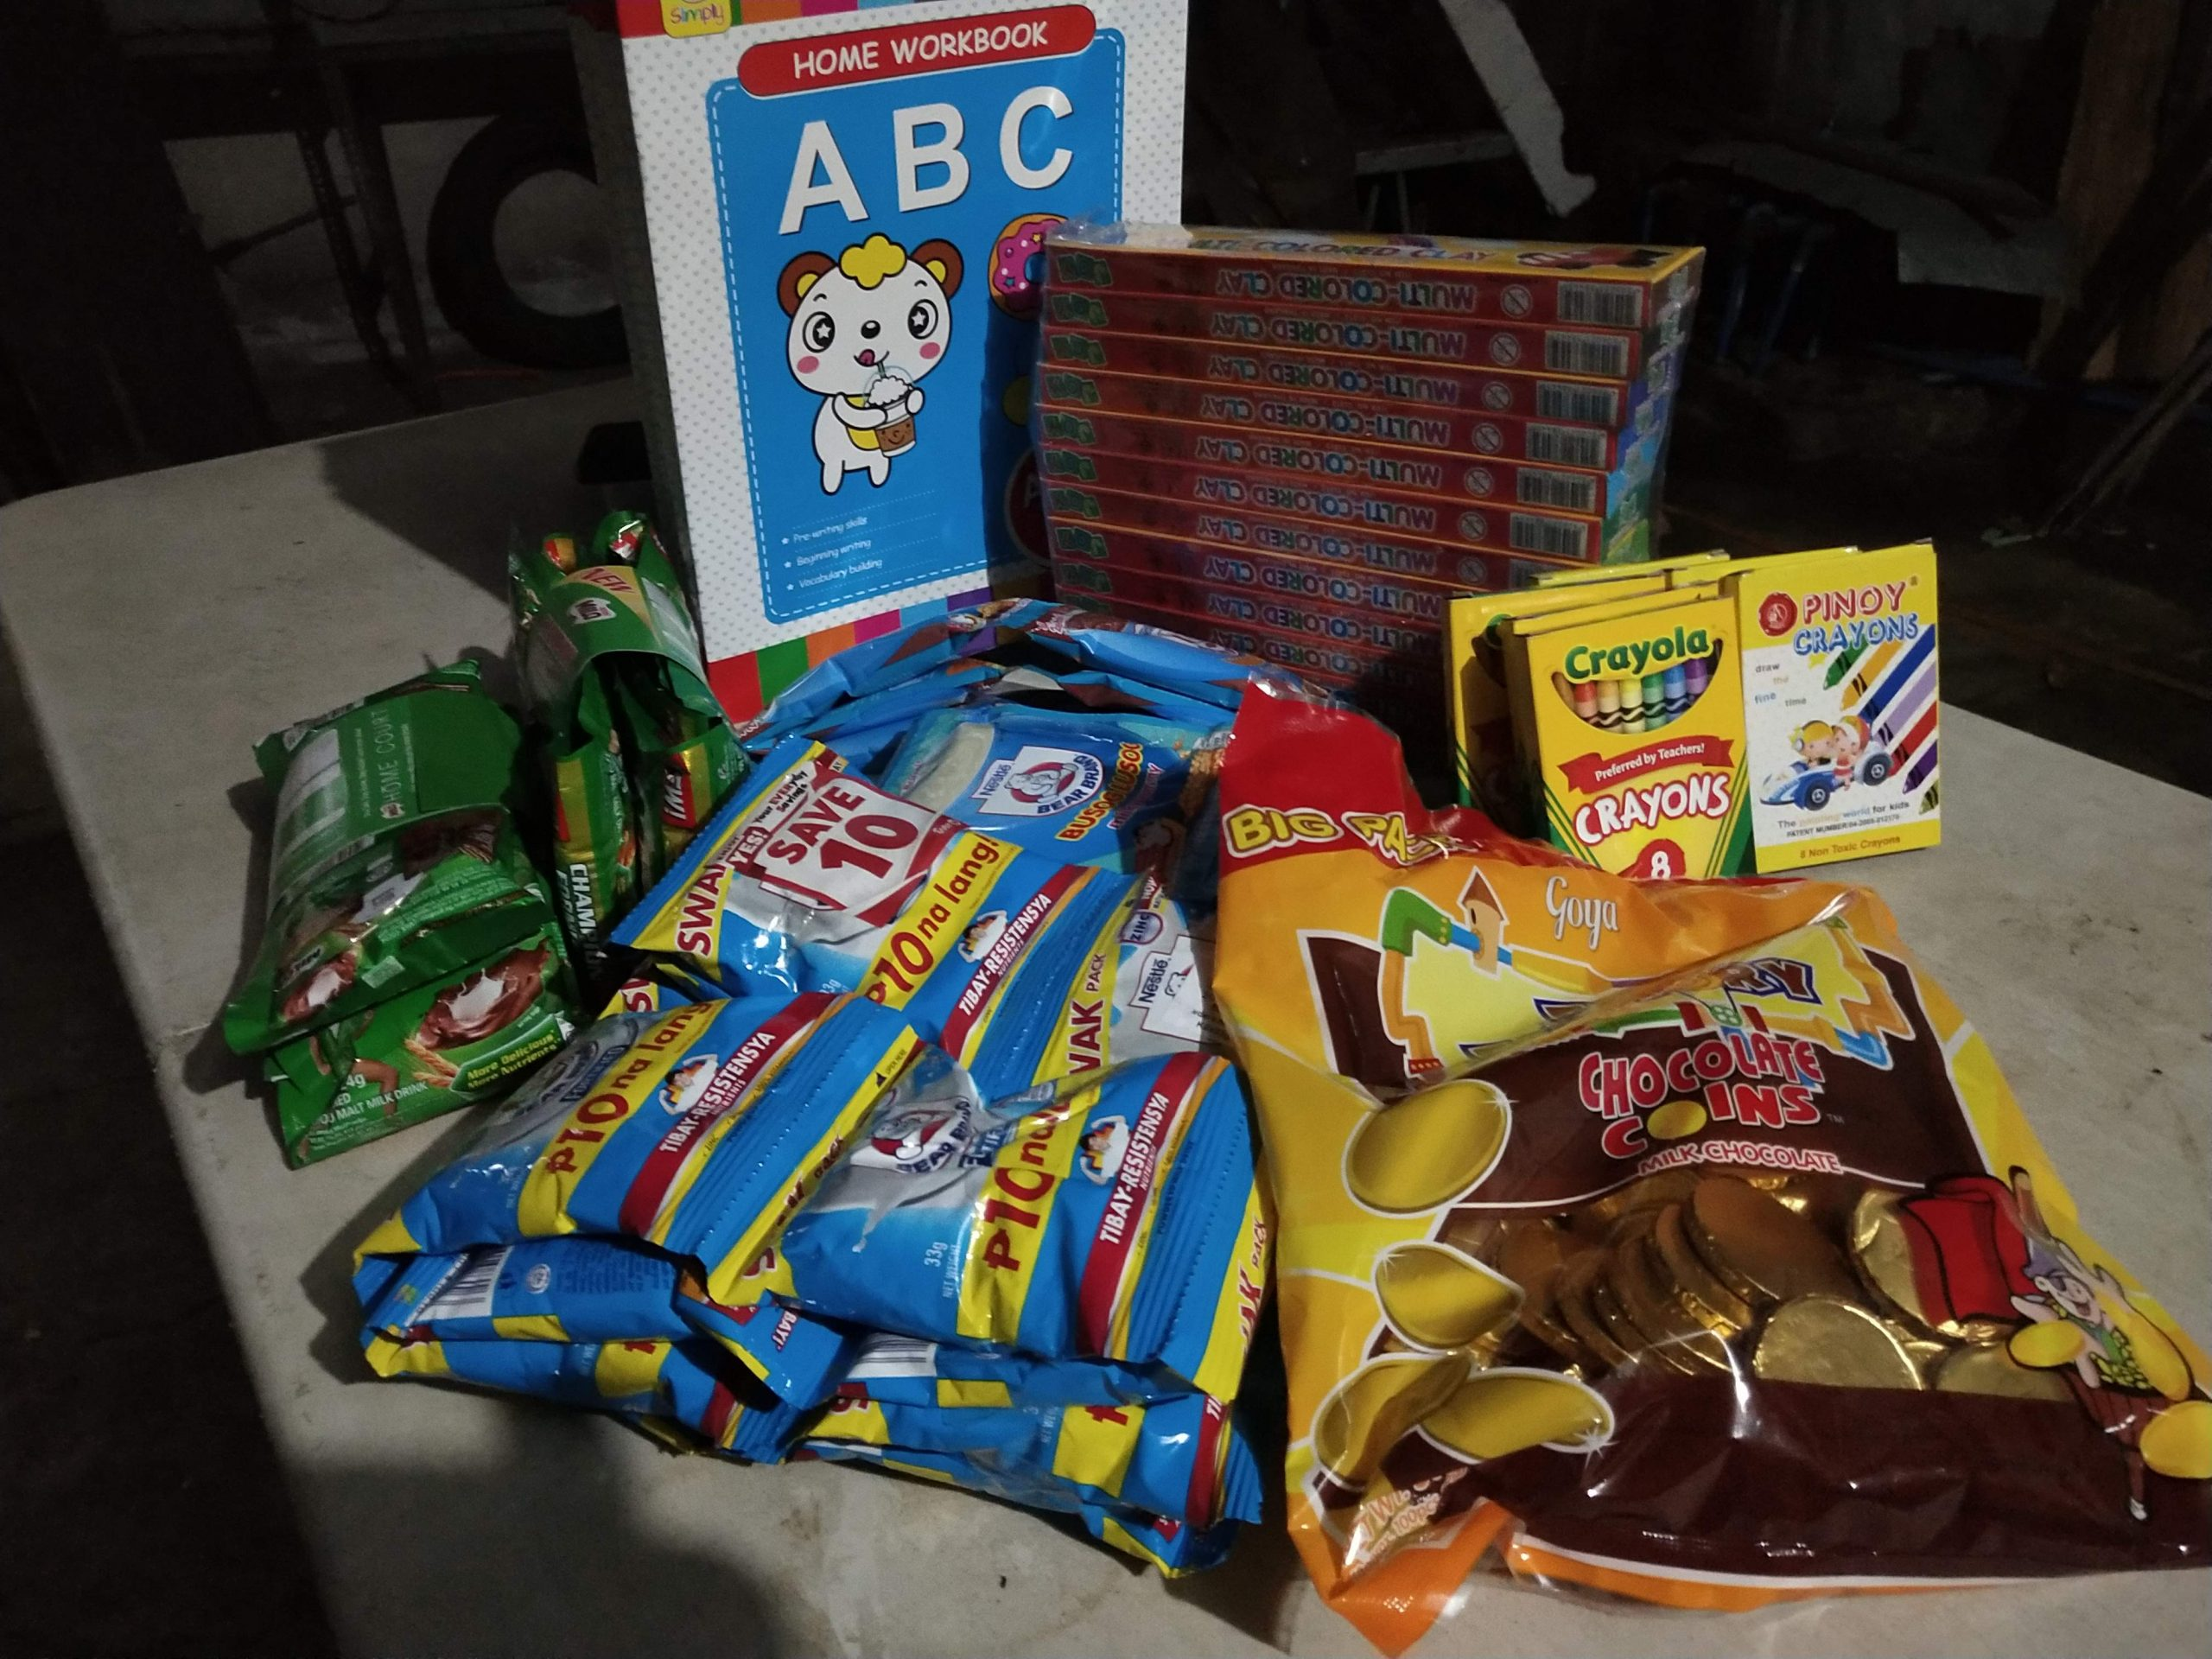 Activity books, crayons, candy, milk, and supplements for the kids